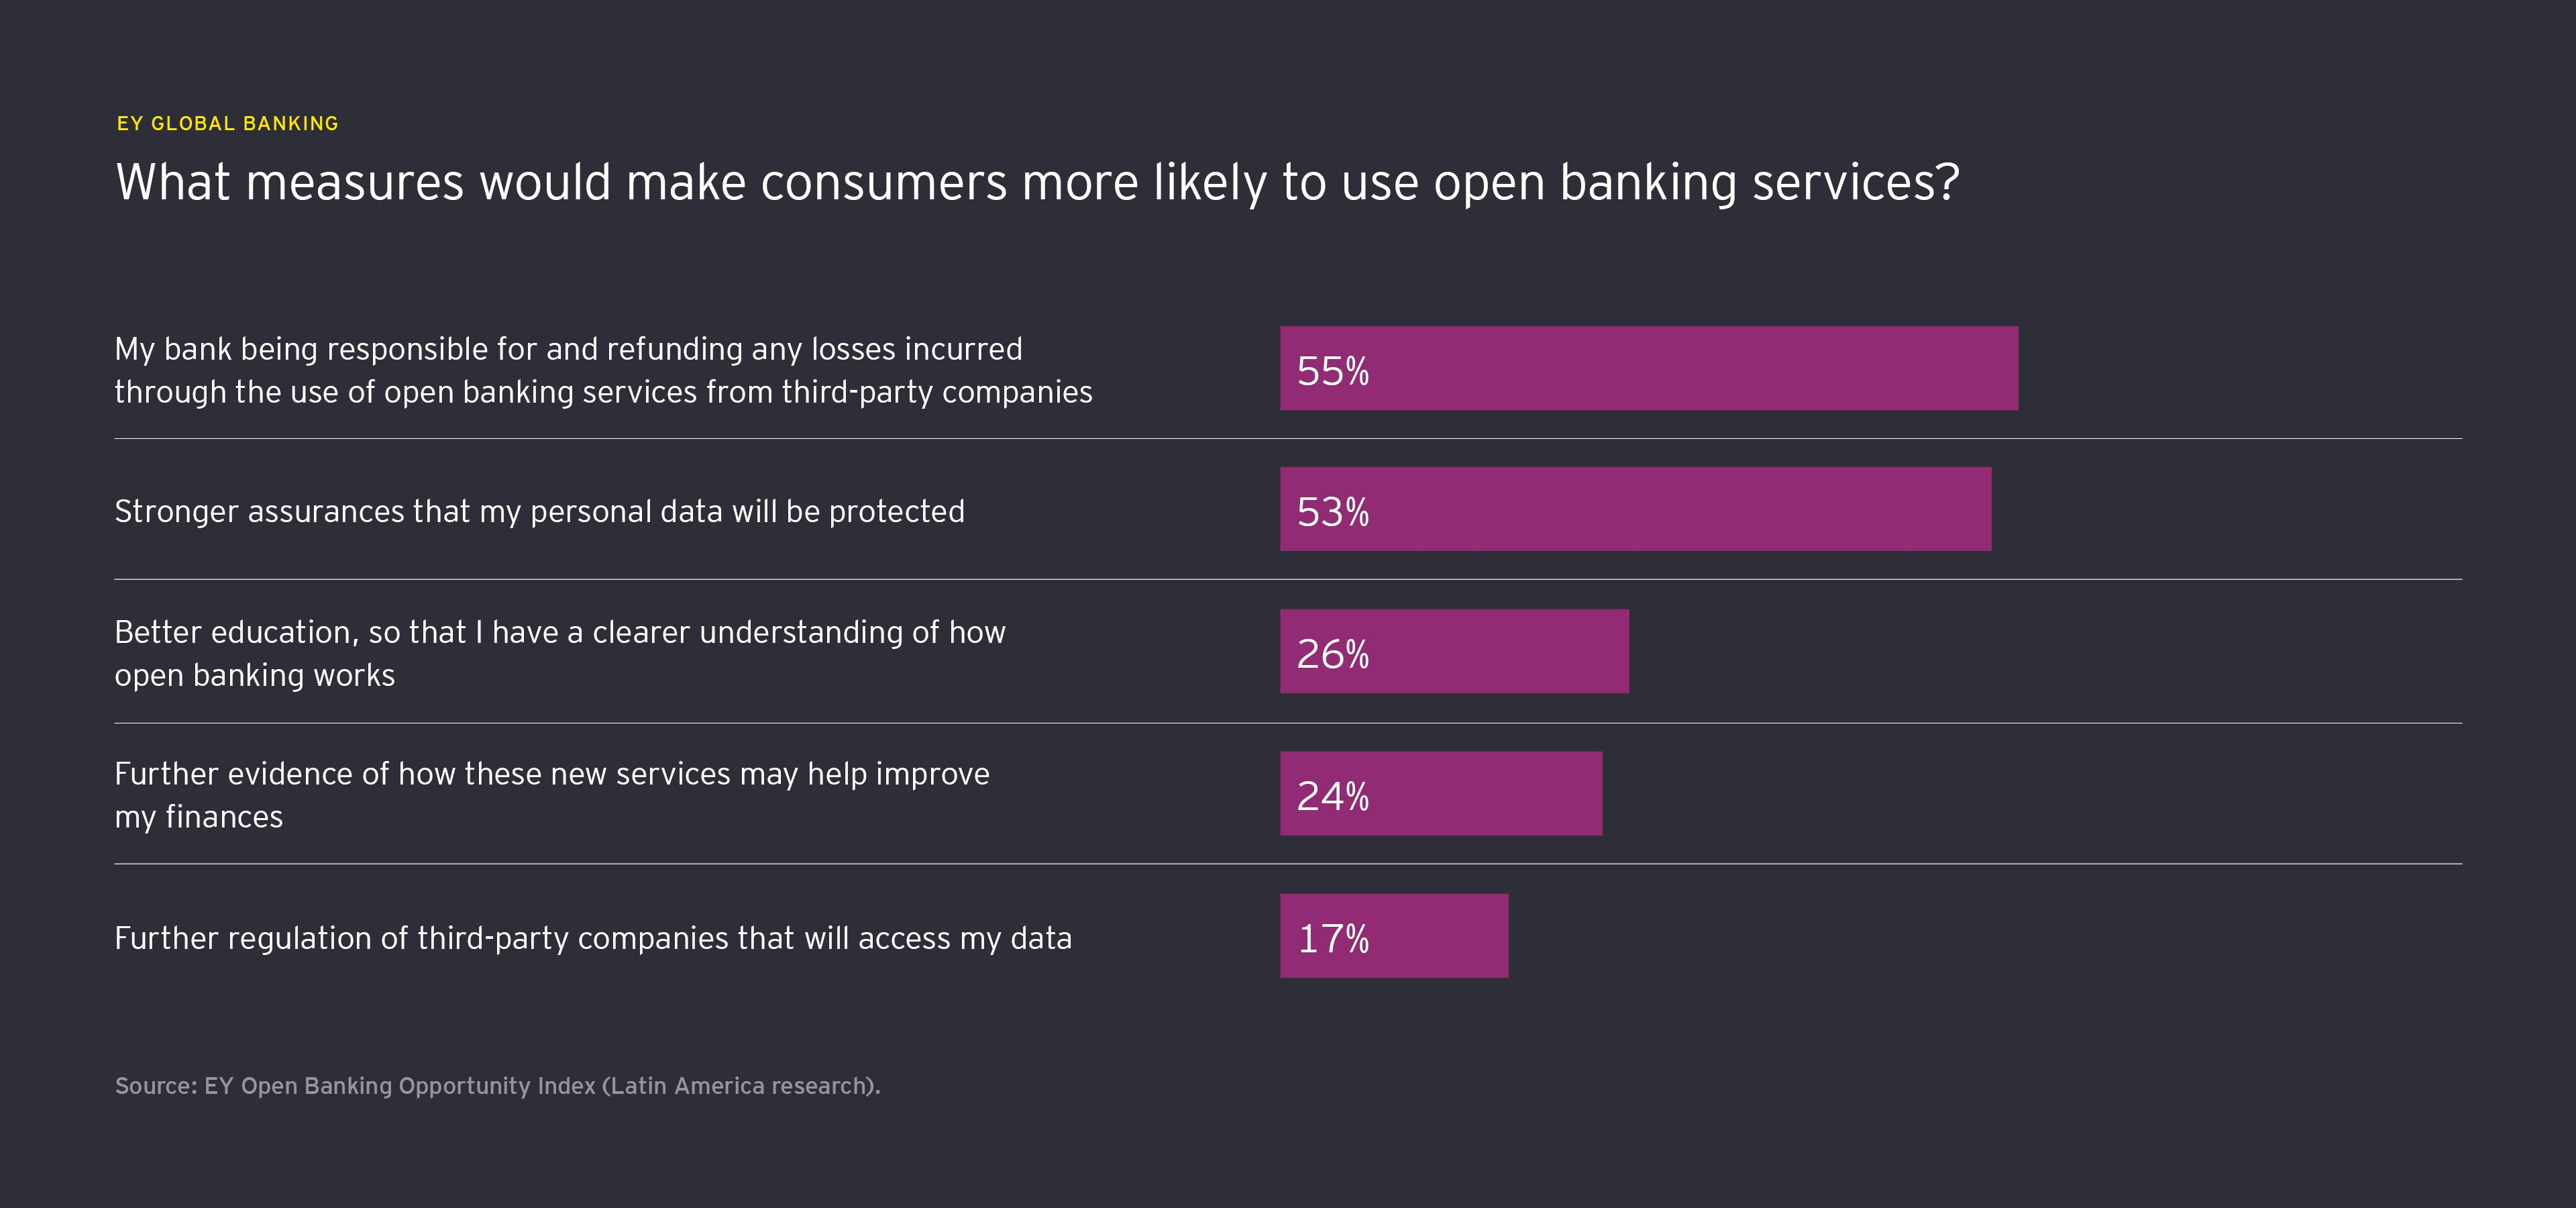 What measures would make consumers more likely to use open banking services